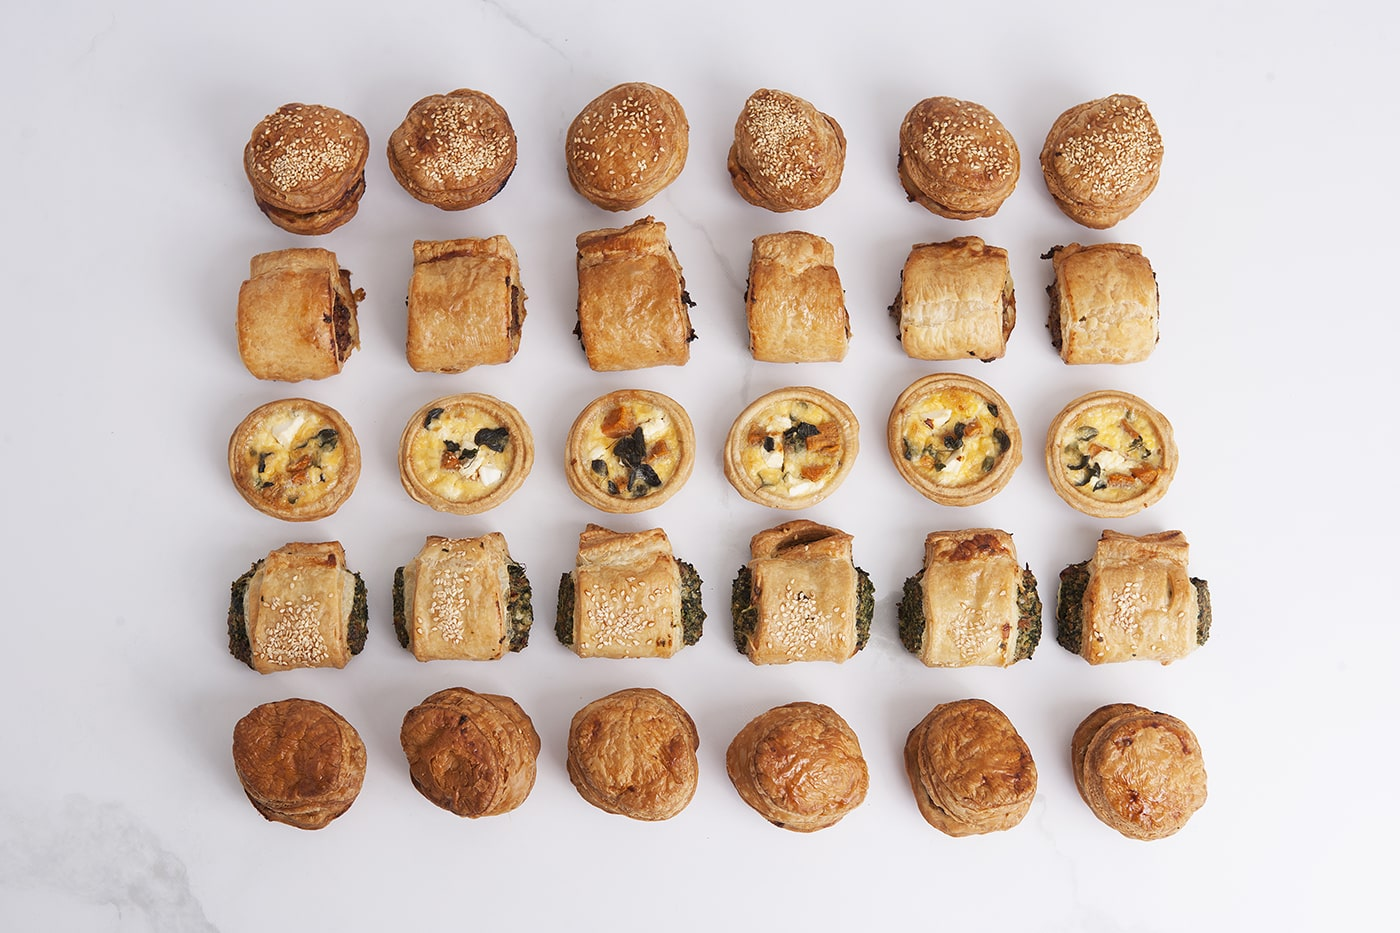 Ideal for a party or event, these mini pastries including pies, sausage rolls and quiches are delicisous.